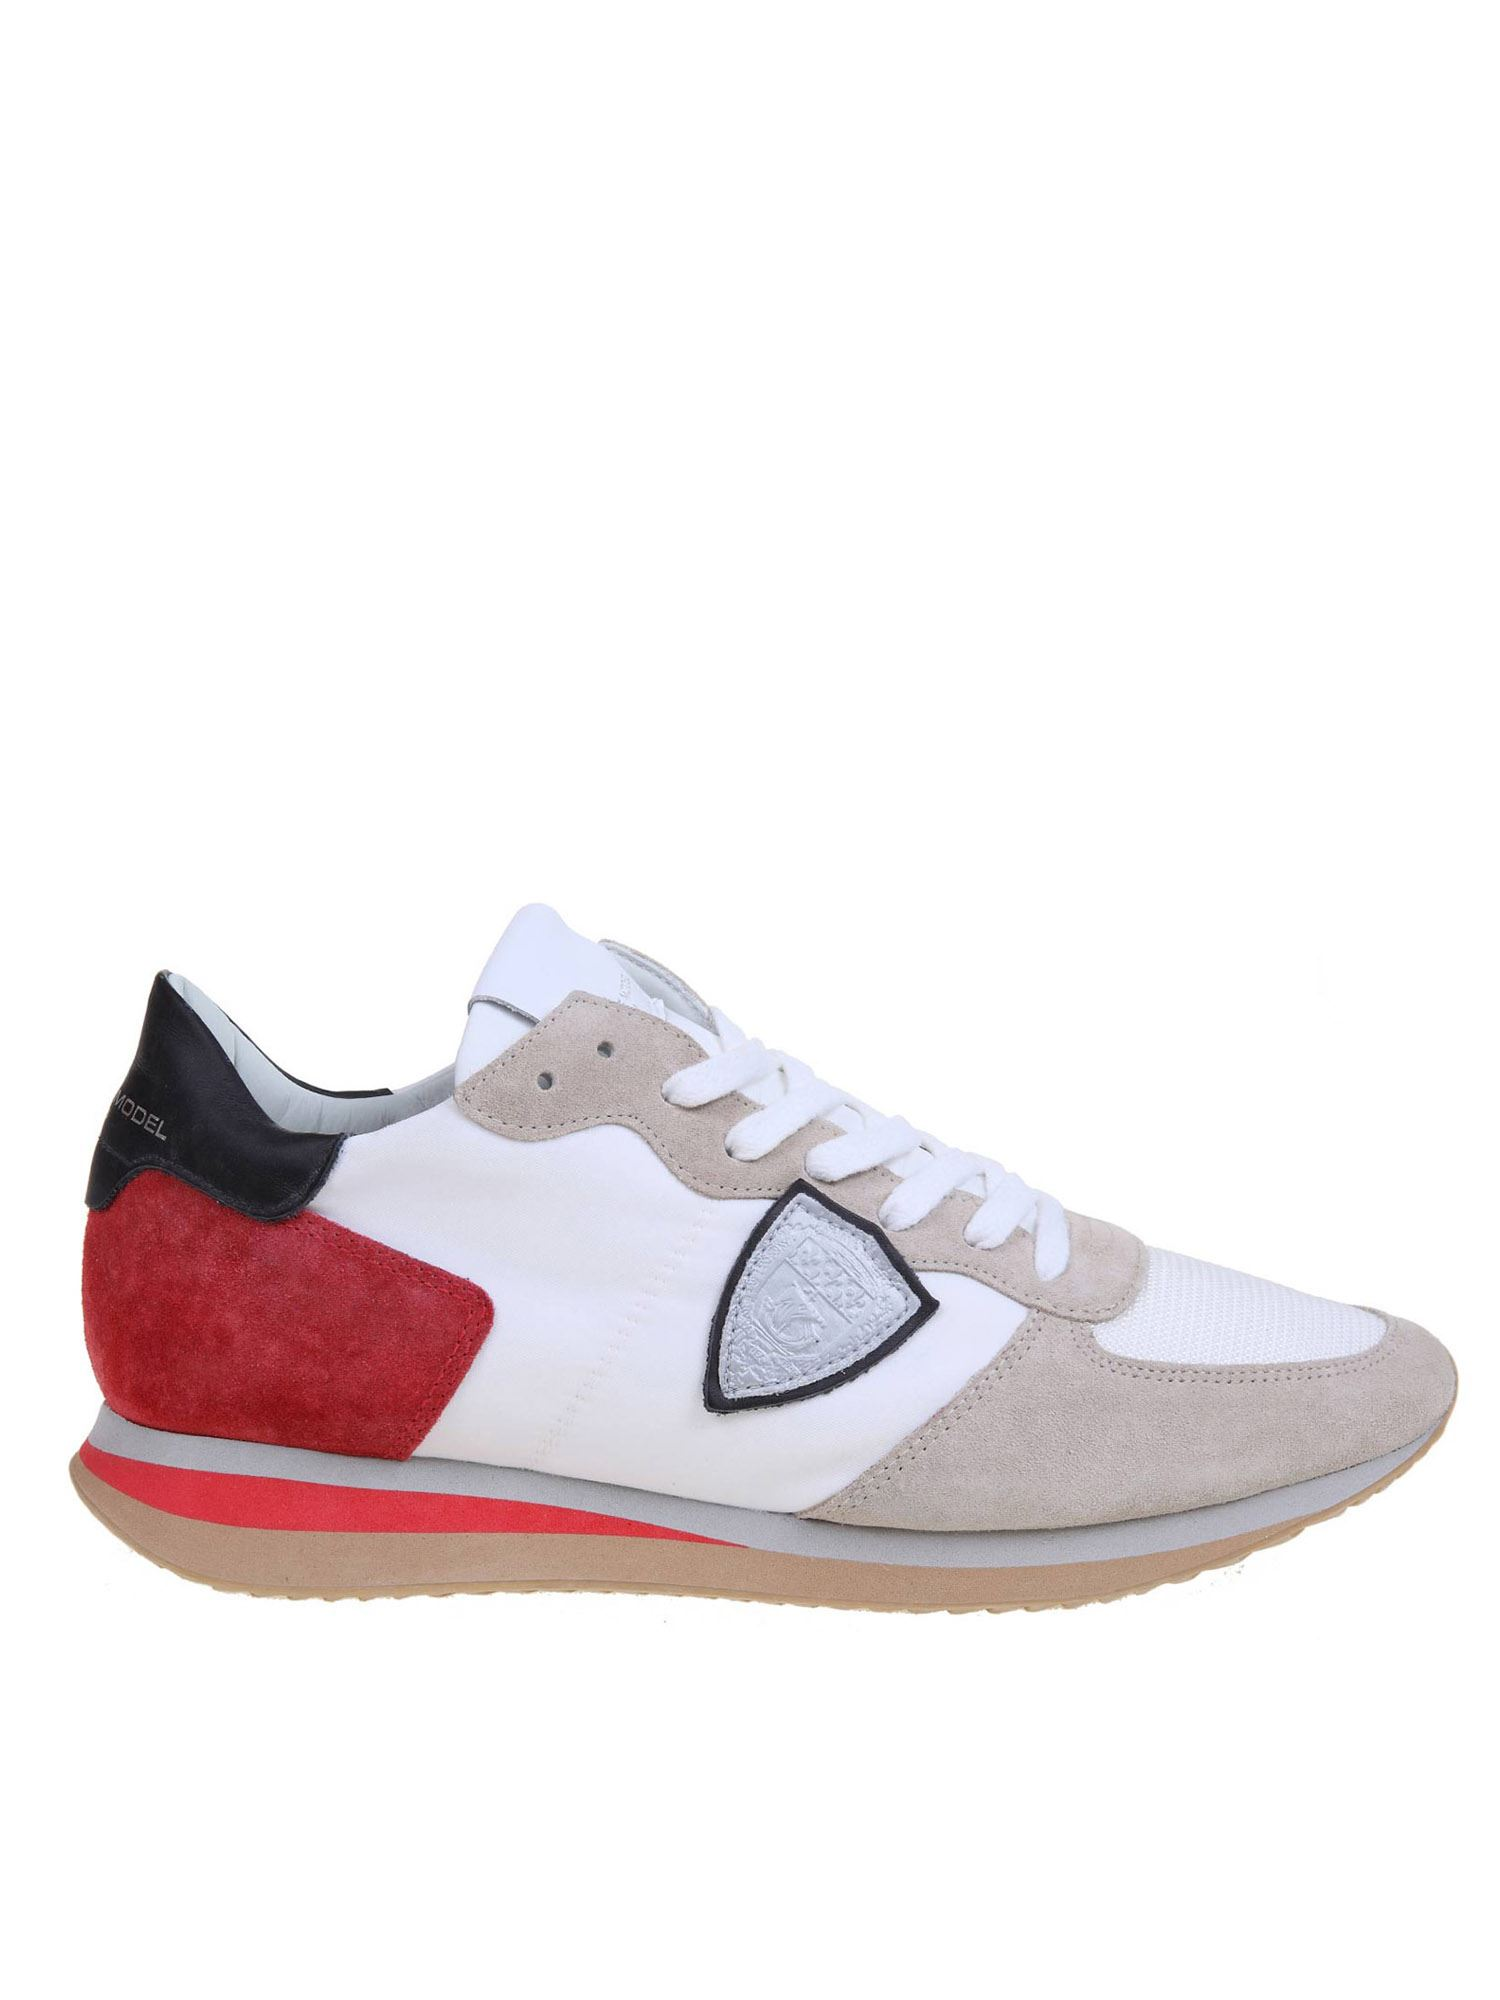 Philippe Model Sneakers TRPX SNEAKERS IN WHITE AND RED